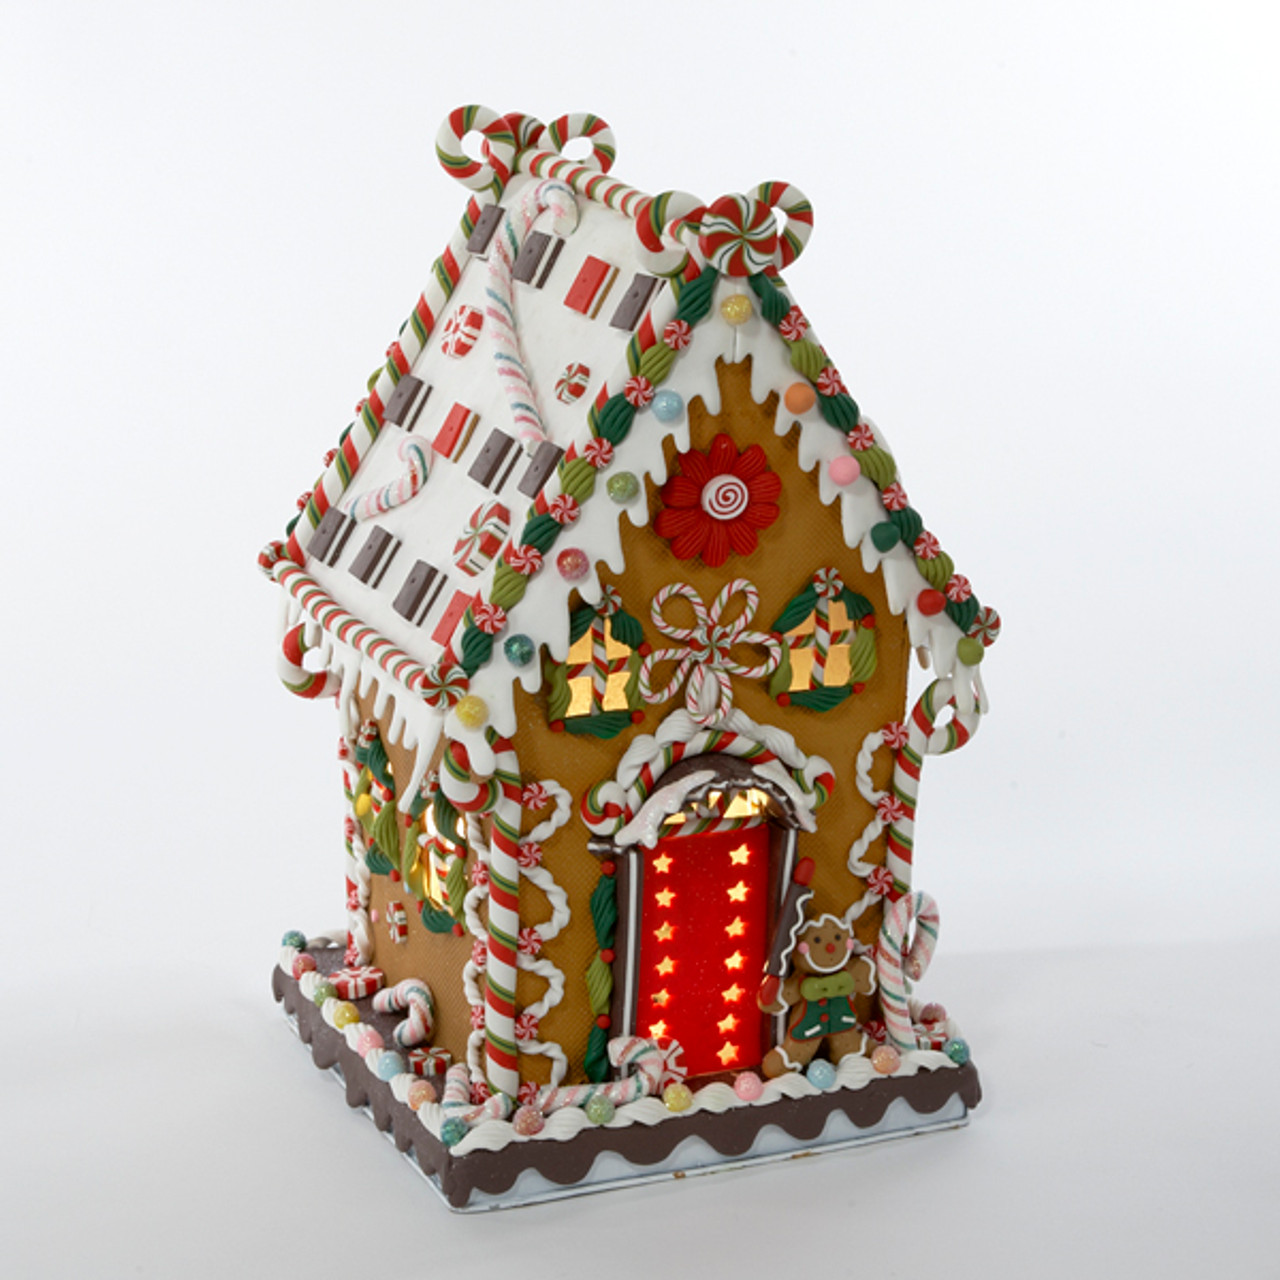 1325 gingerbread kisses lighted cookie and candy house christmas decoration 9455258